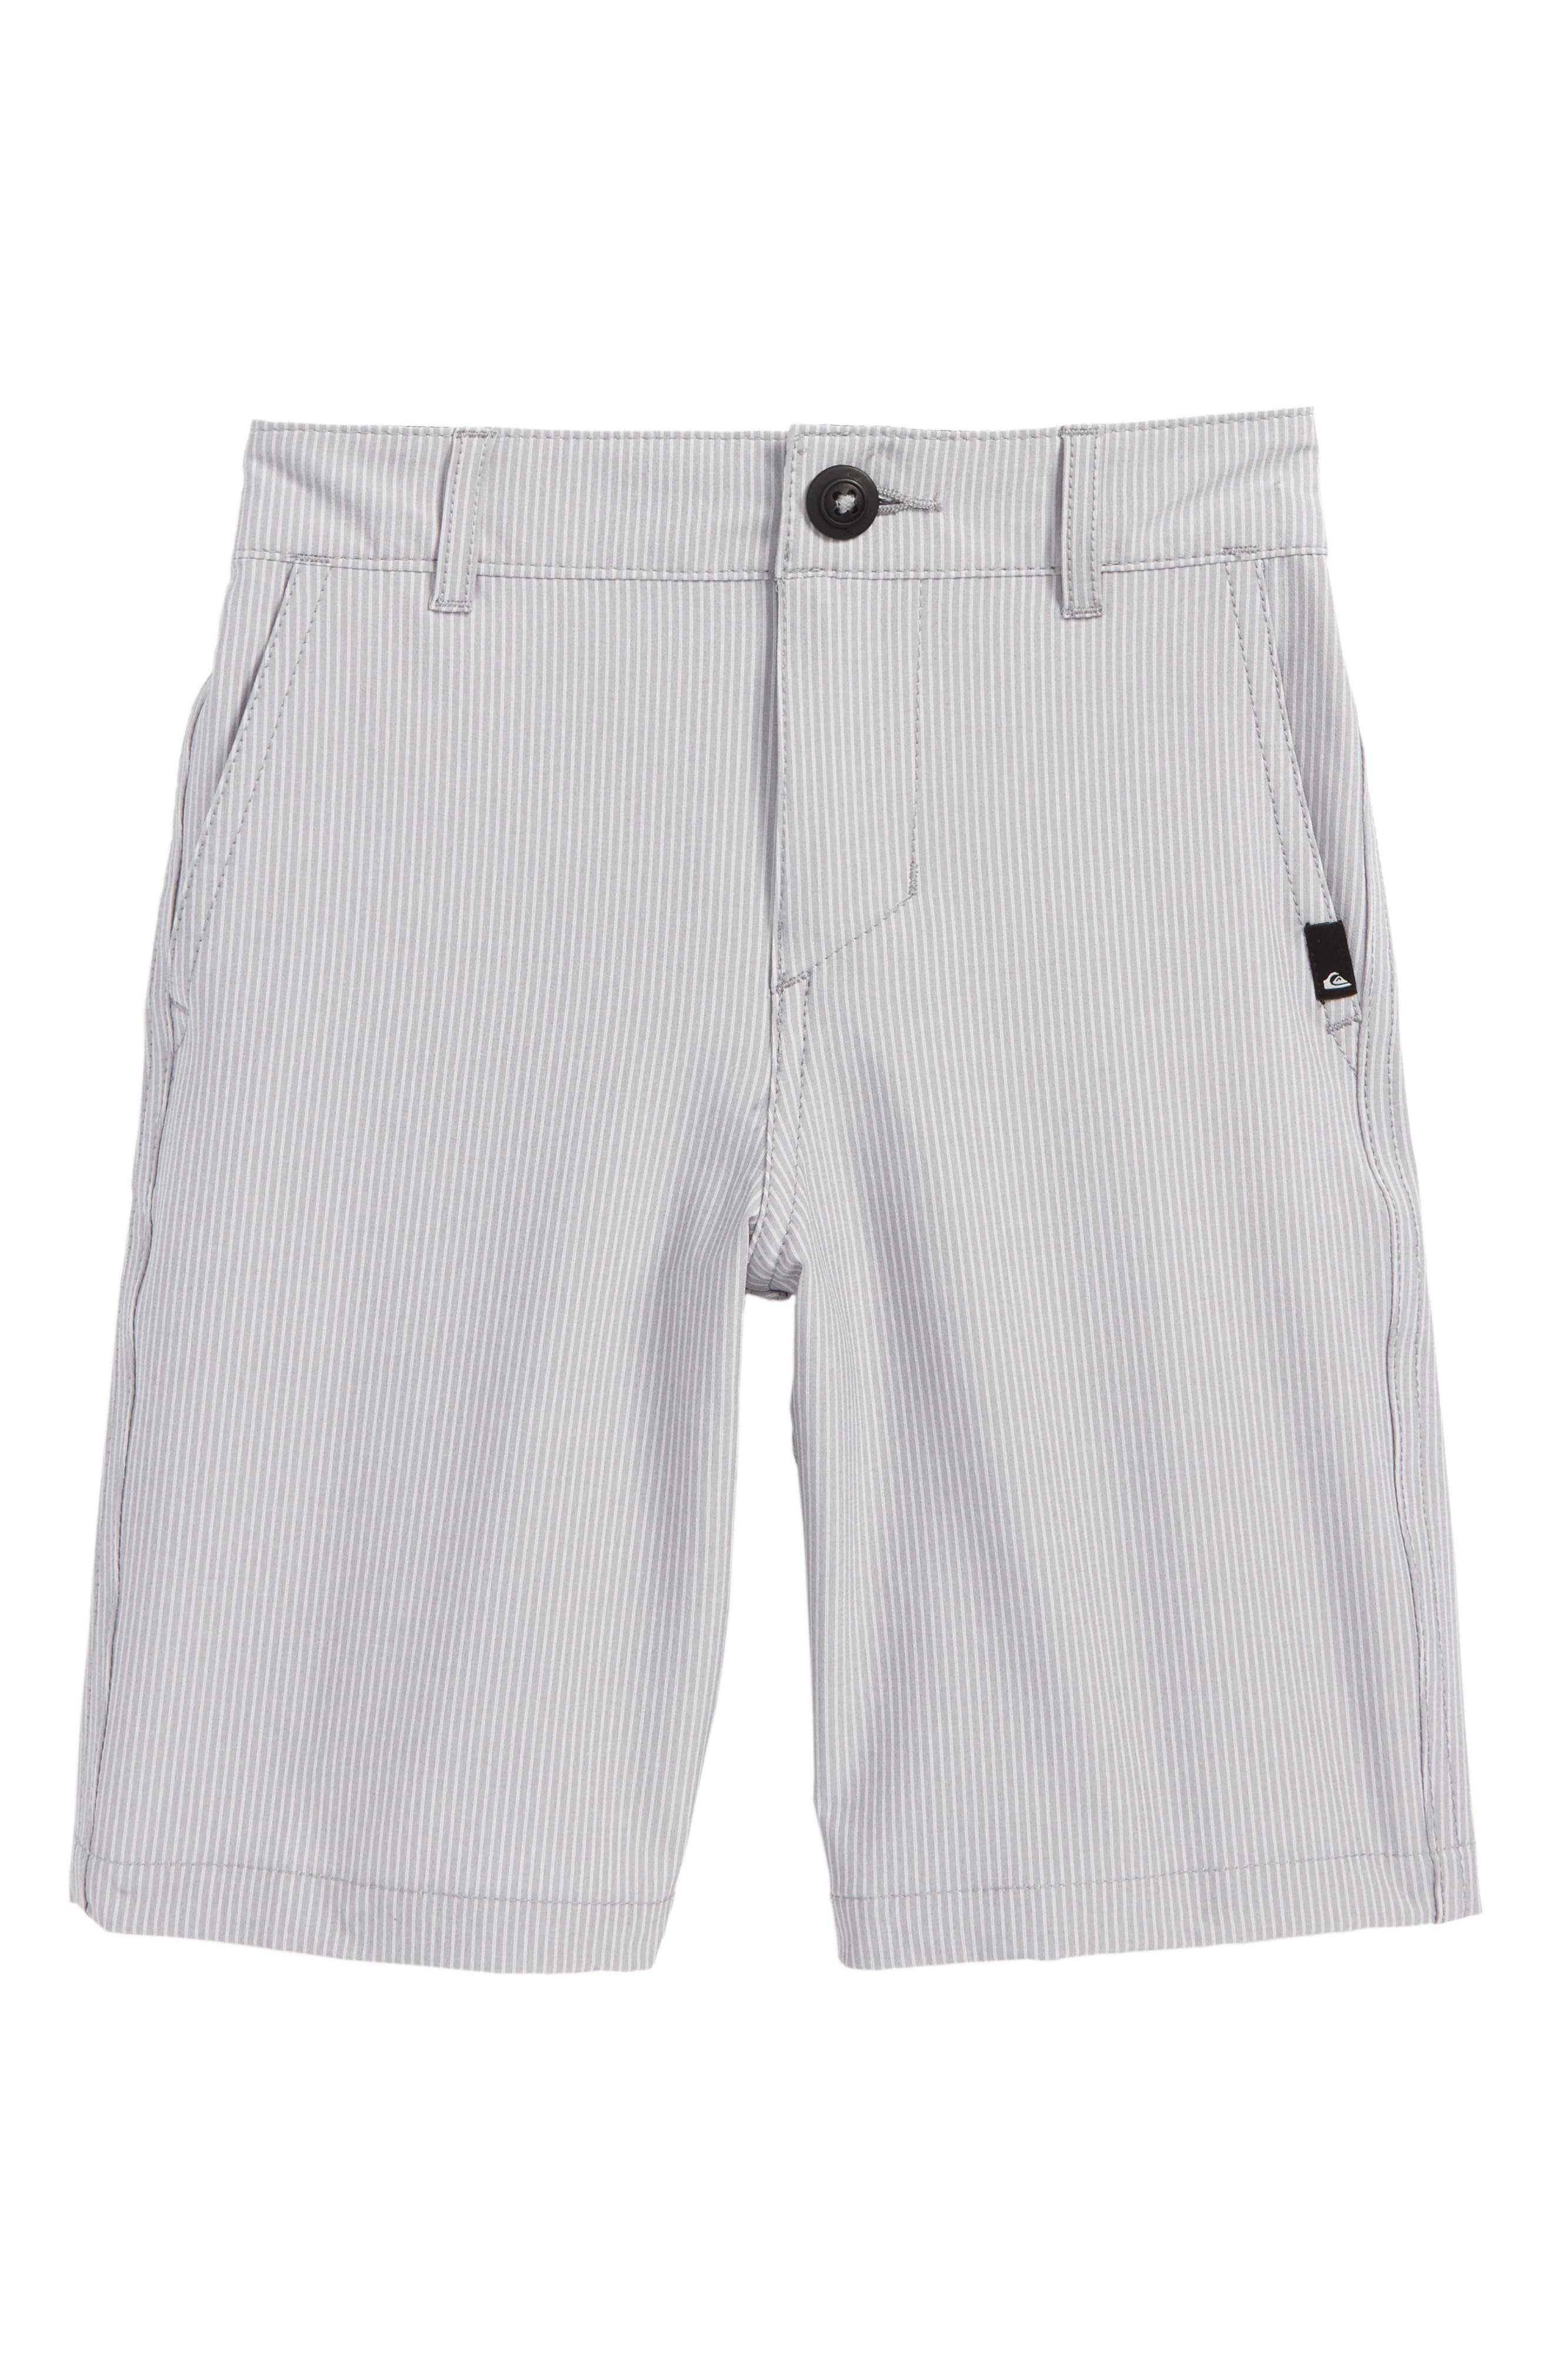 Main Image - Quiksilver Union Pinstripe Amphibian Board Shorts (Toddler Boys & Little Boys)